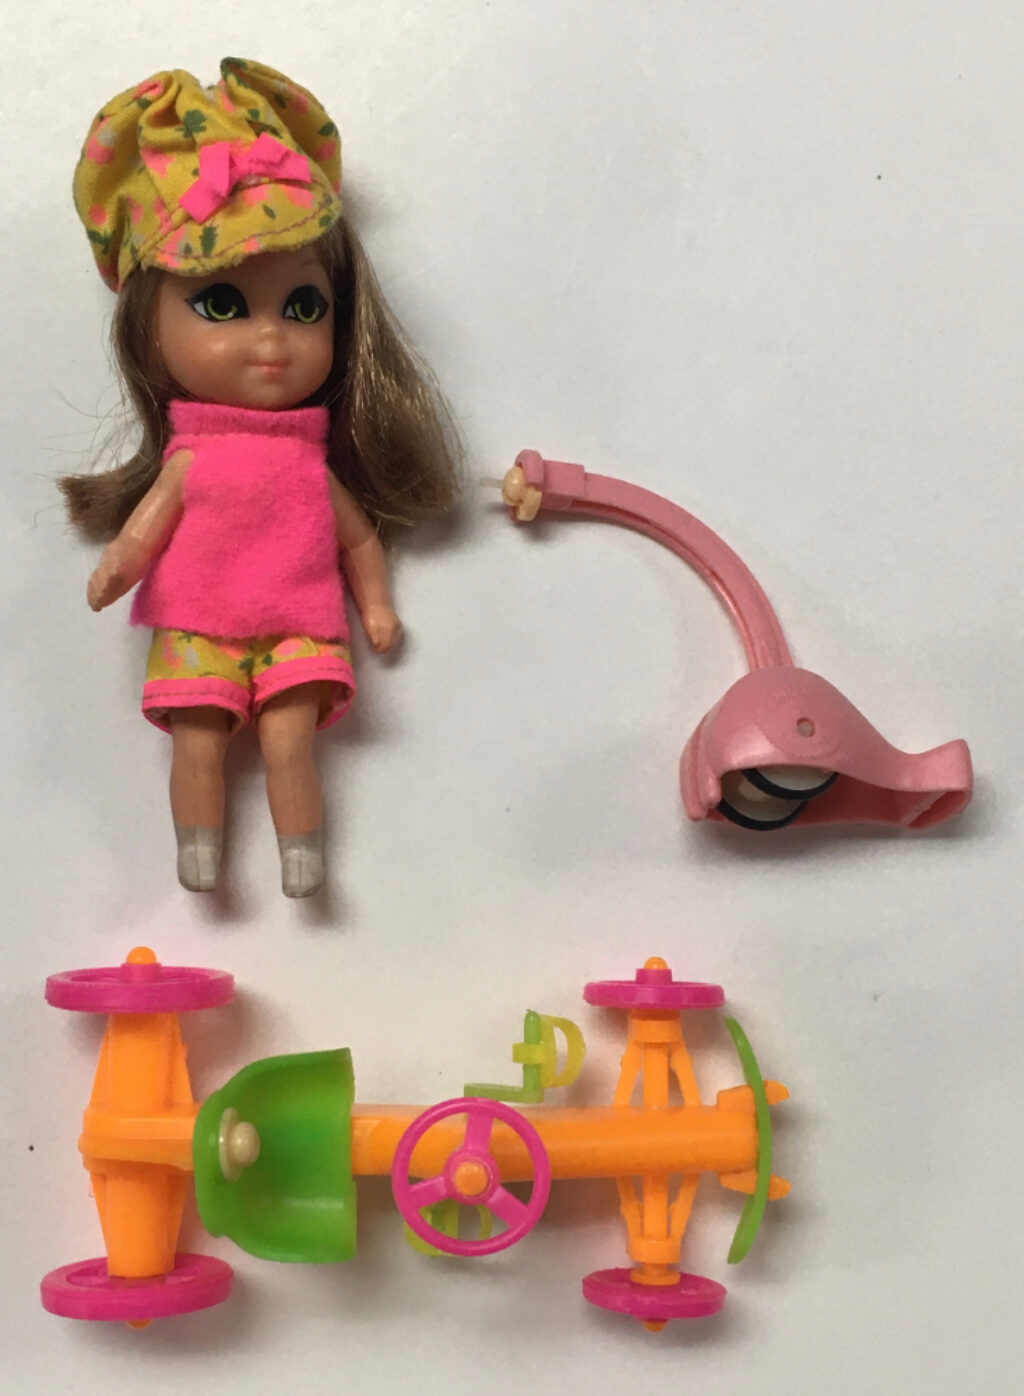 1968 mattel liddle kiddles annabelle autodiddle 1